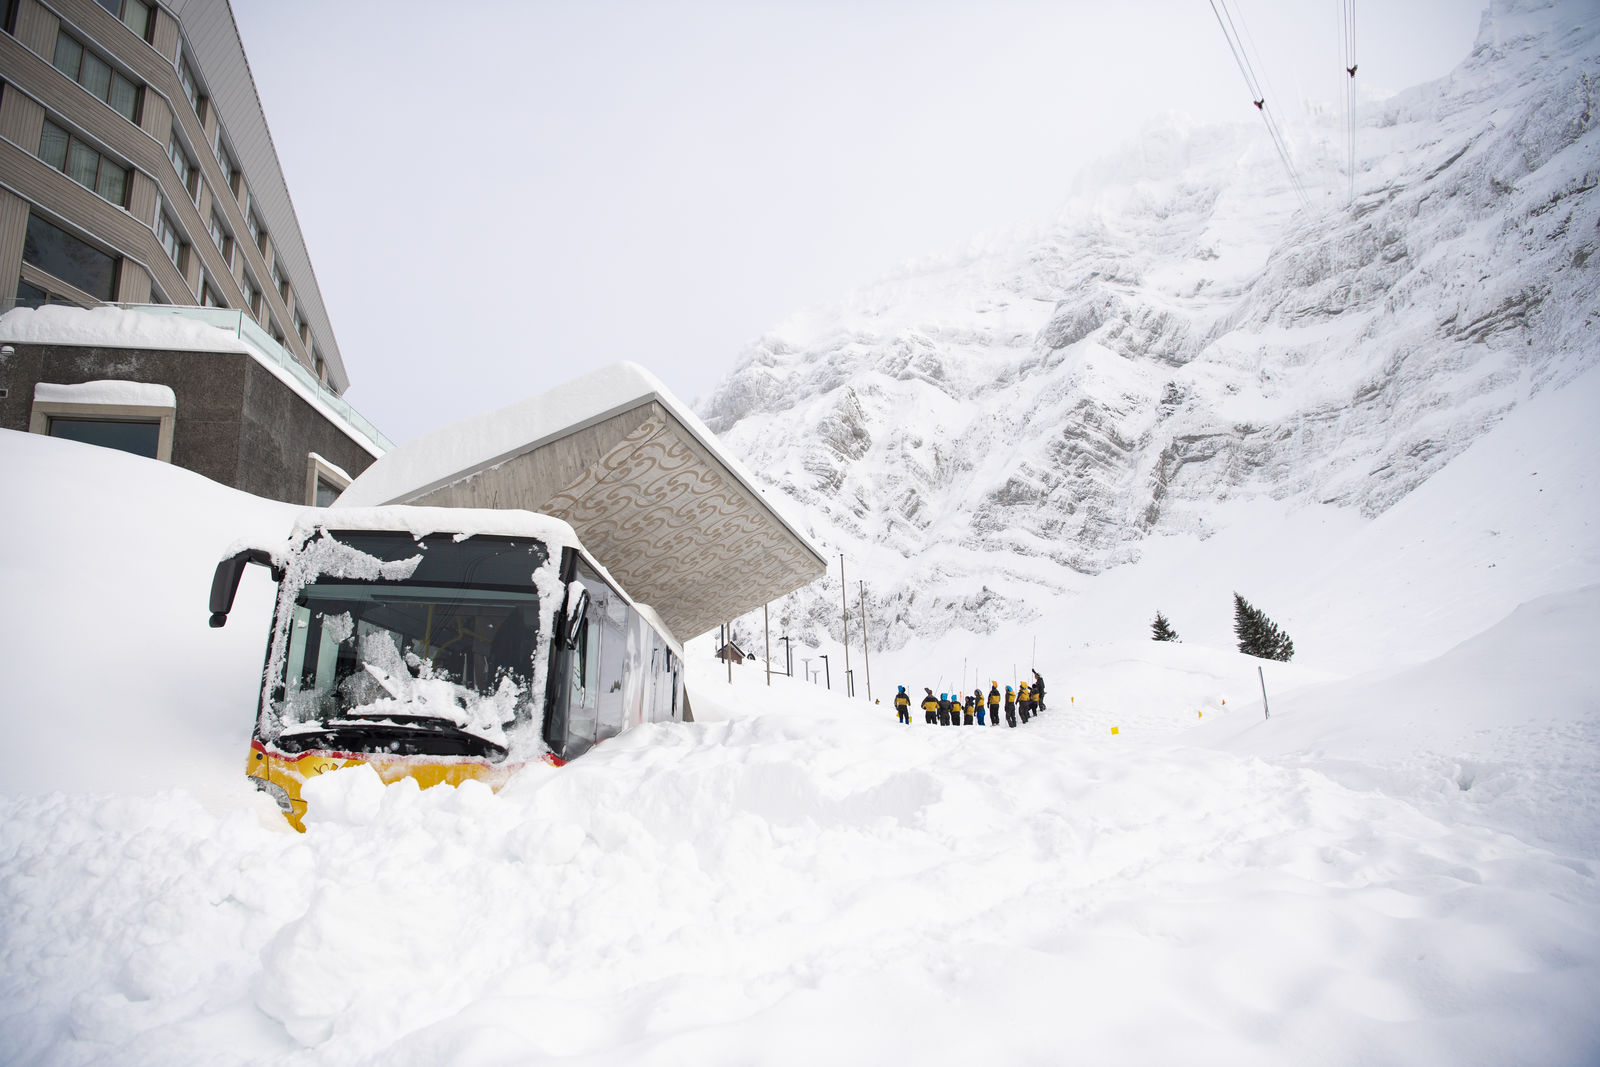 Snow is piled up outside the Hotel Saentis in Schwaegalp, Switzerland, Friday Jan. 11. (Gian Ehrenzeller/Keystone via AP)